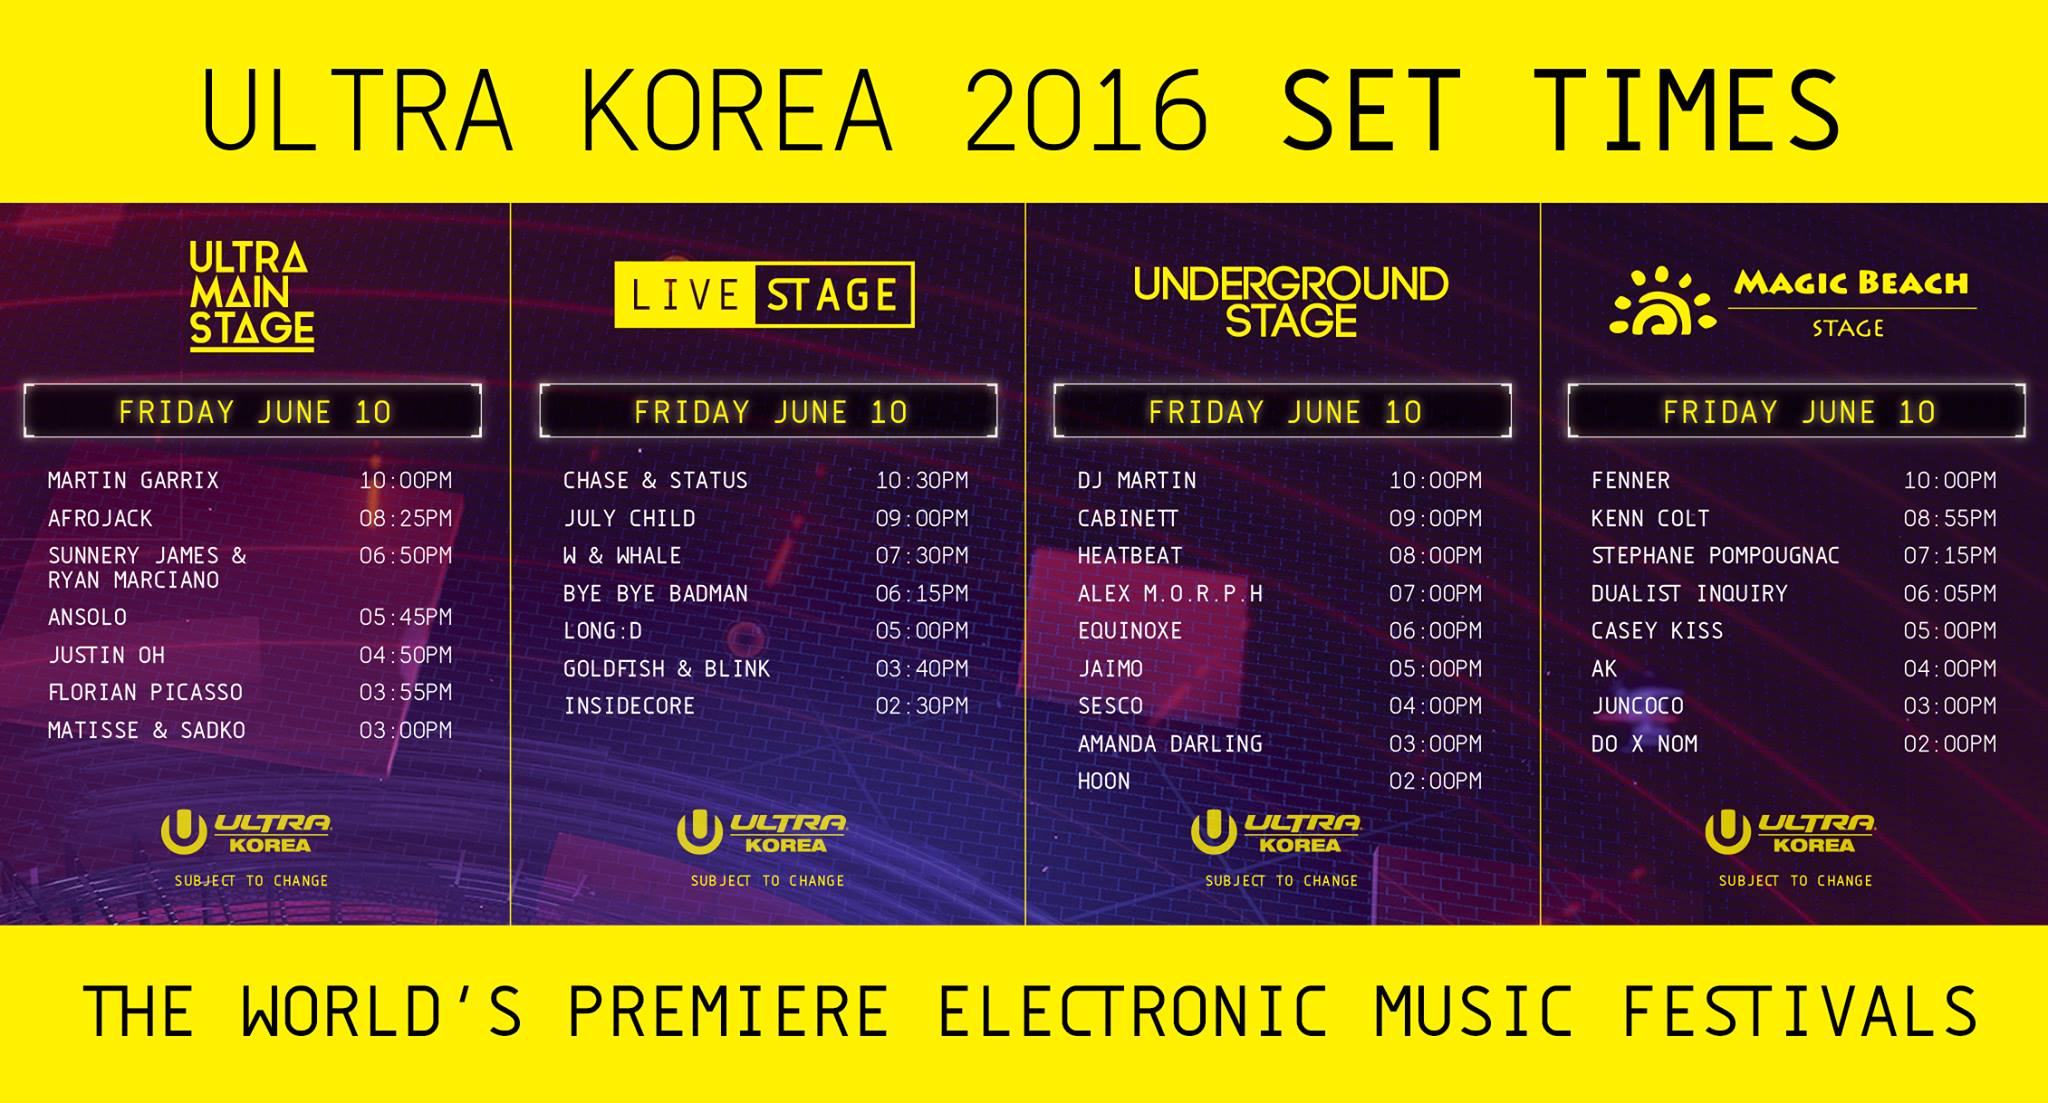 ULTRA KOREA 2016 Friday